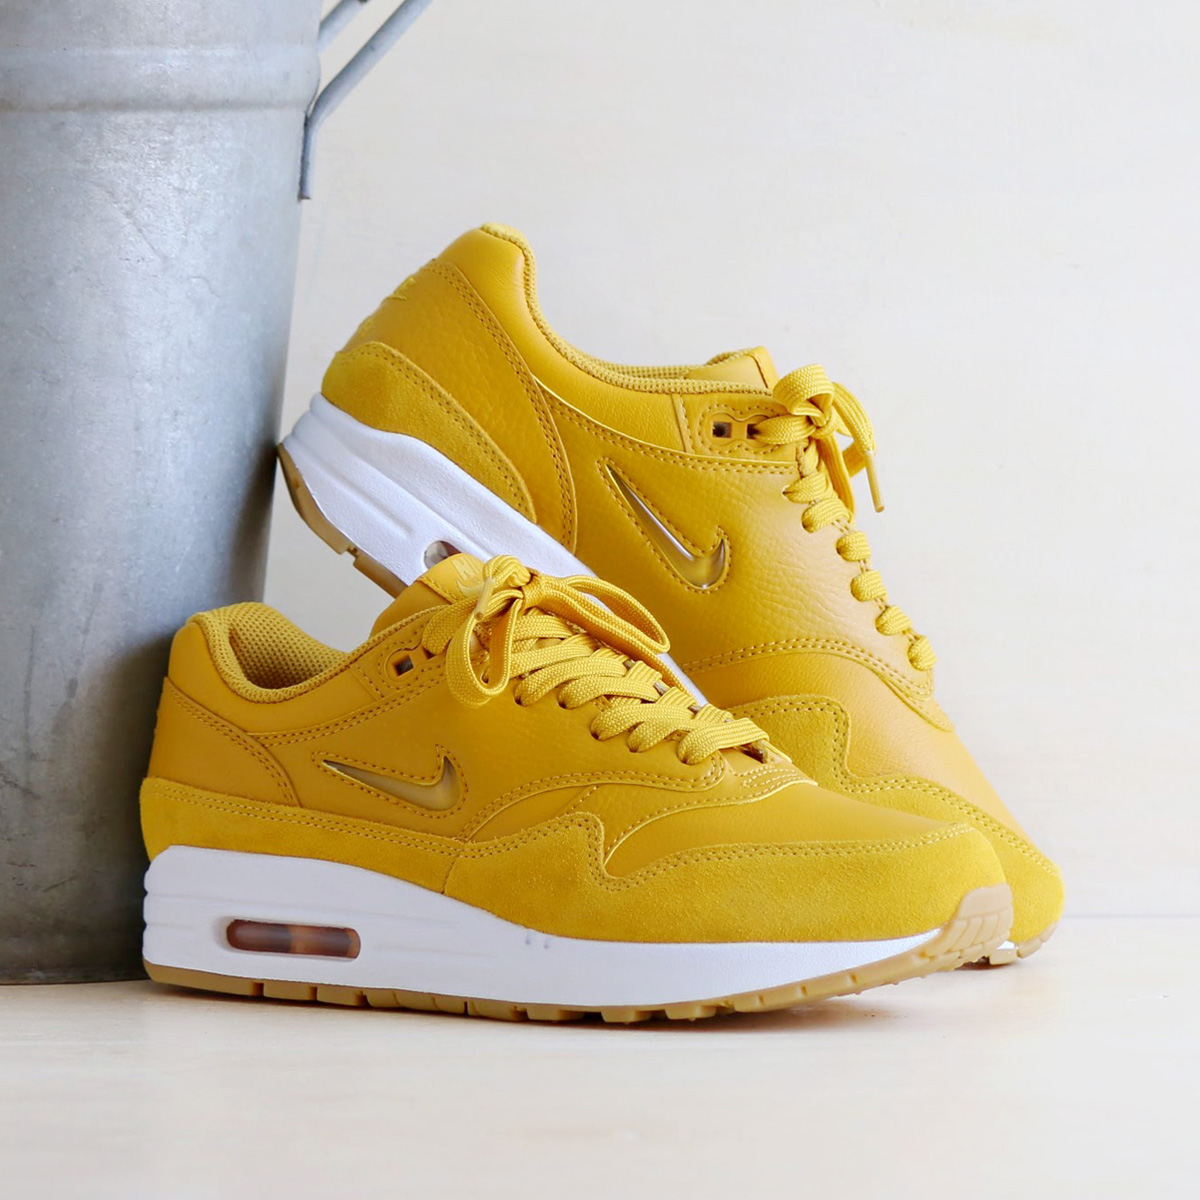 low priced f94b9 edfce Categories. « All Categories · Shoes · Men s Shoes · Sneakers · NIKE W AIR  MAX 1 PREMIUM SC ...